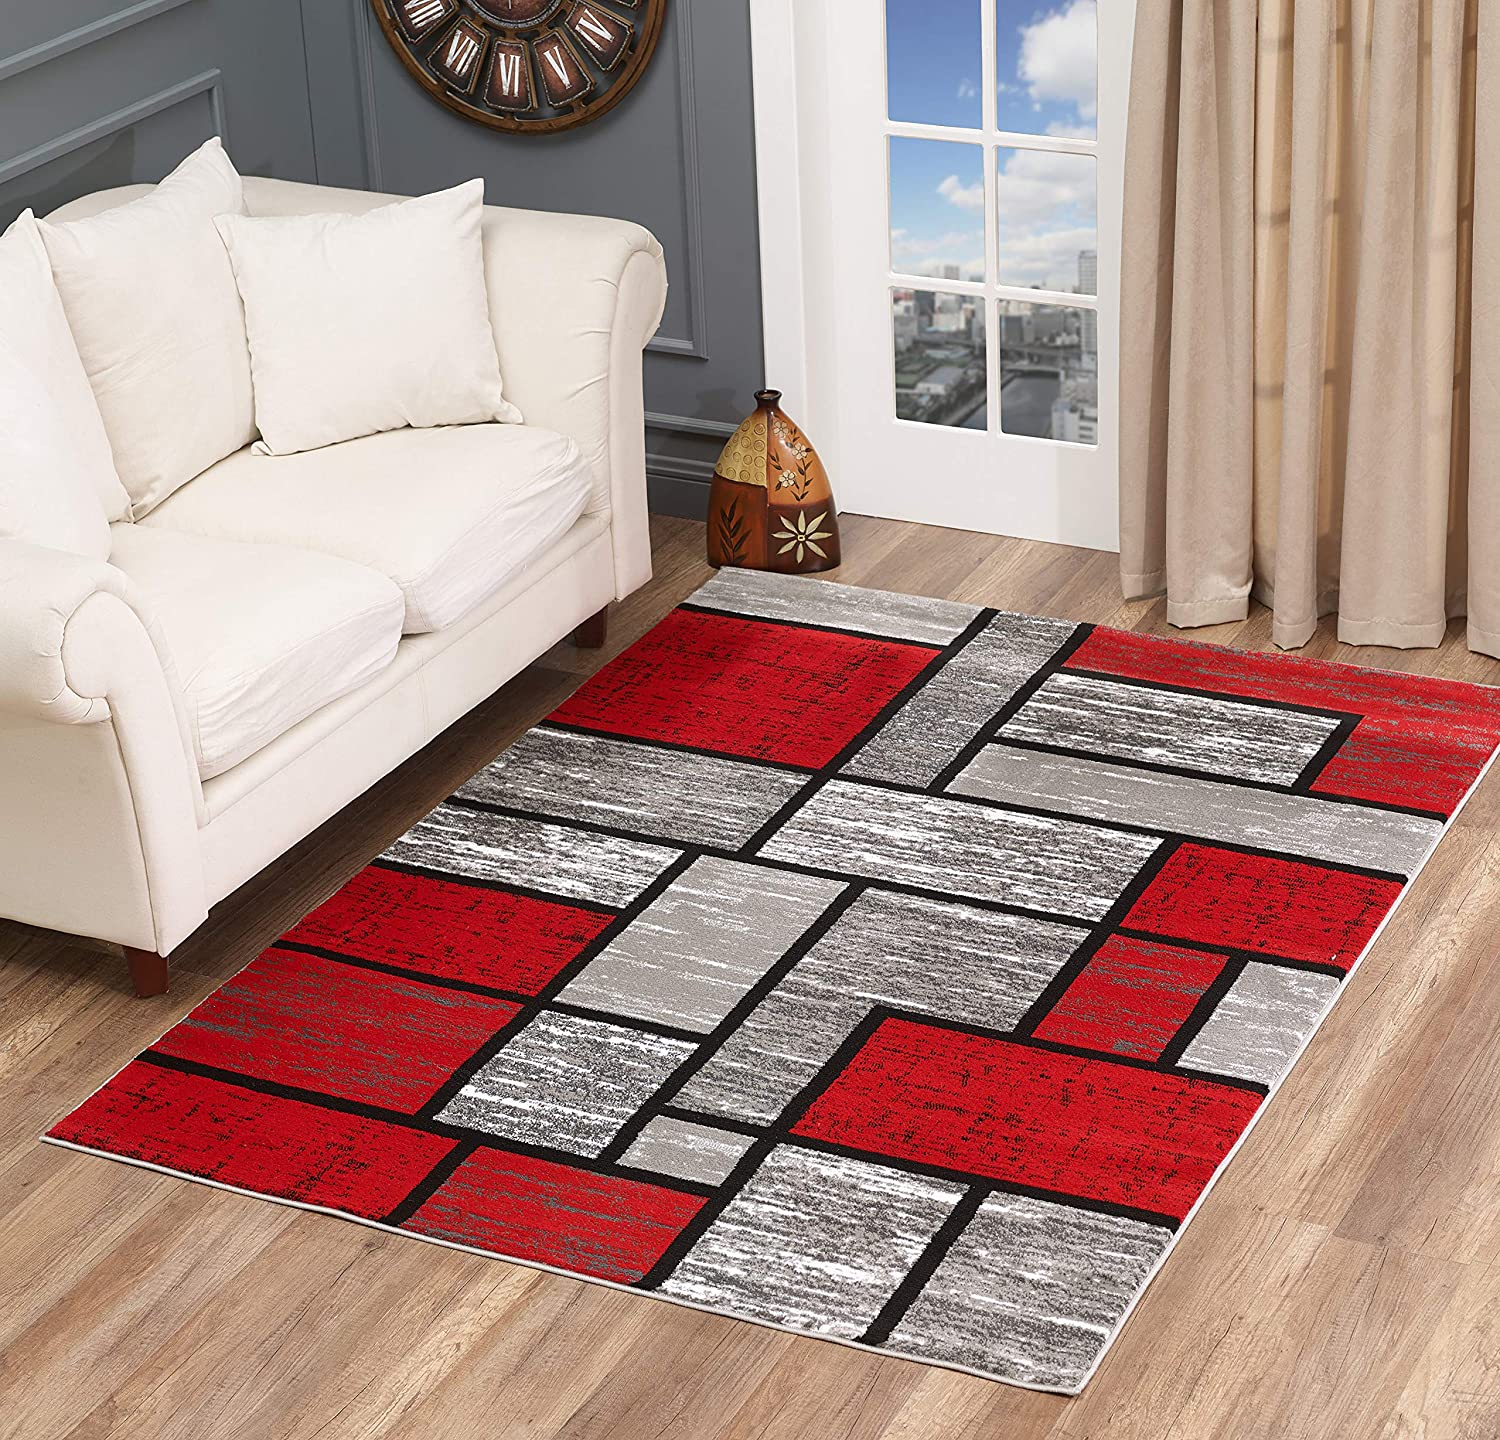 Glory Rugs Red Area Rug 5x7 Gray Abstract Modern Boxes Carpet Bedroom Living Room Contemporary Dining Accent Sevilla Collection 6614a Grey Red Furniture Decor